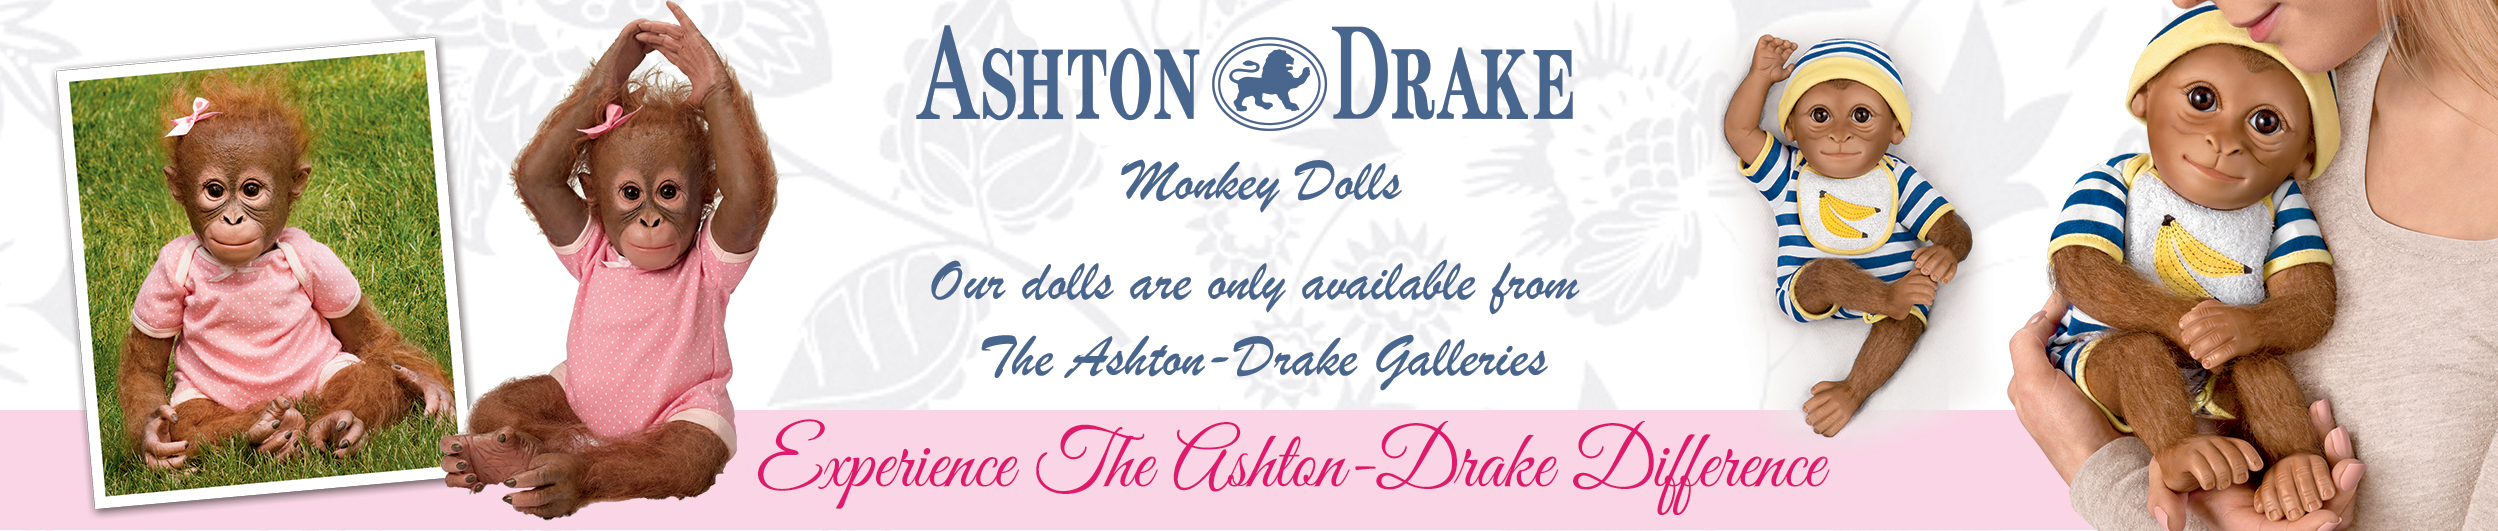 Ashton-Drake Monkey Dolls